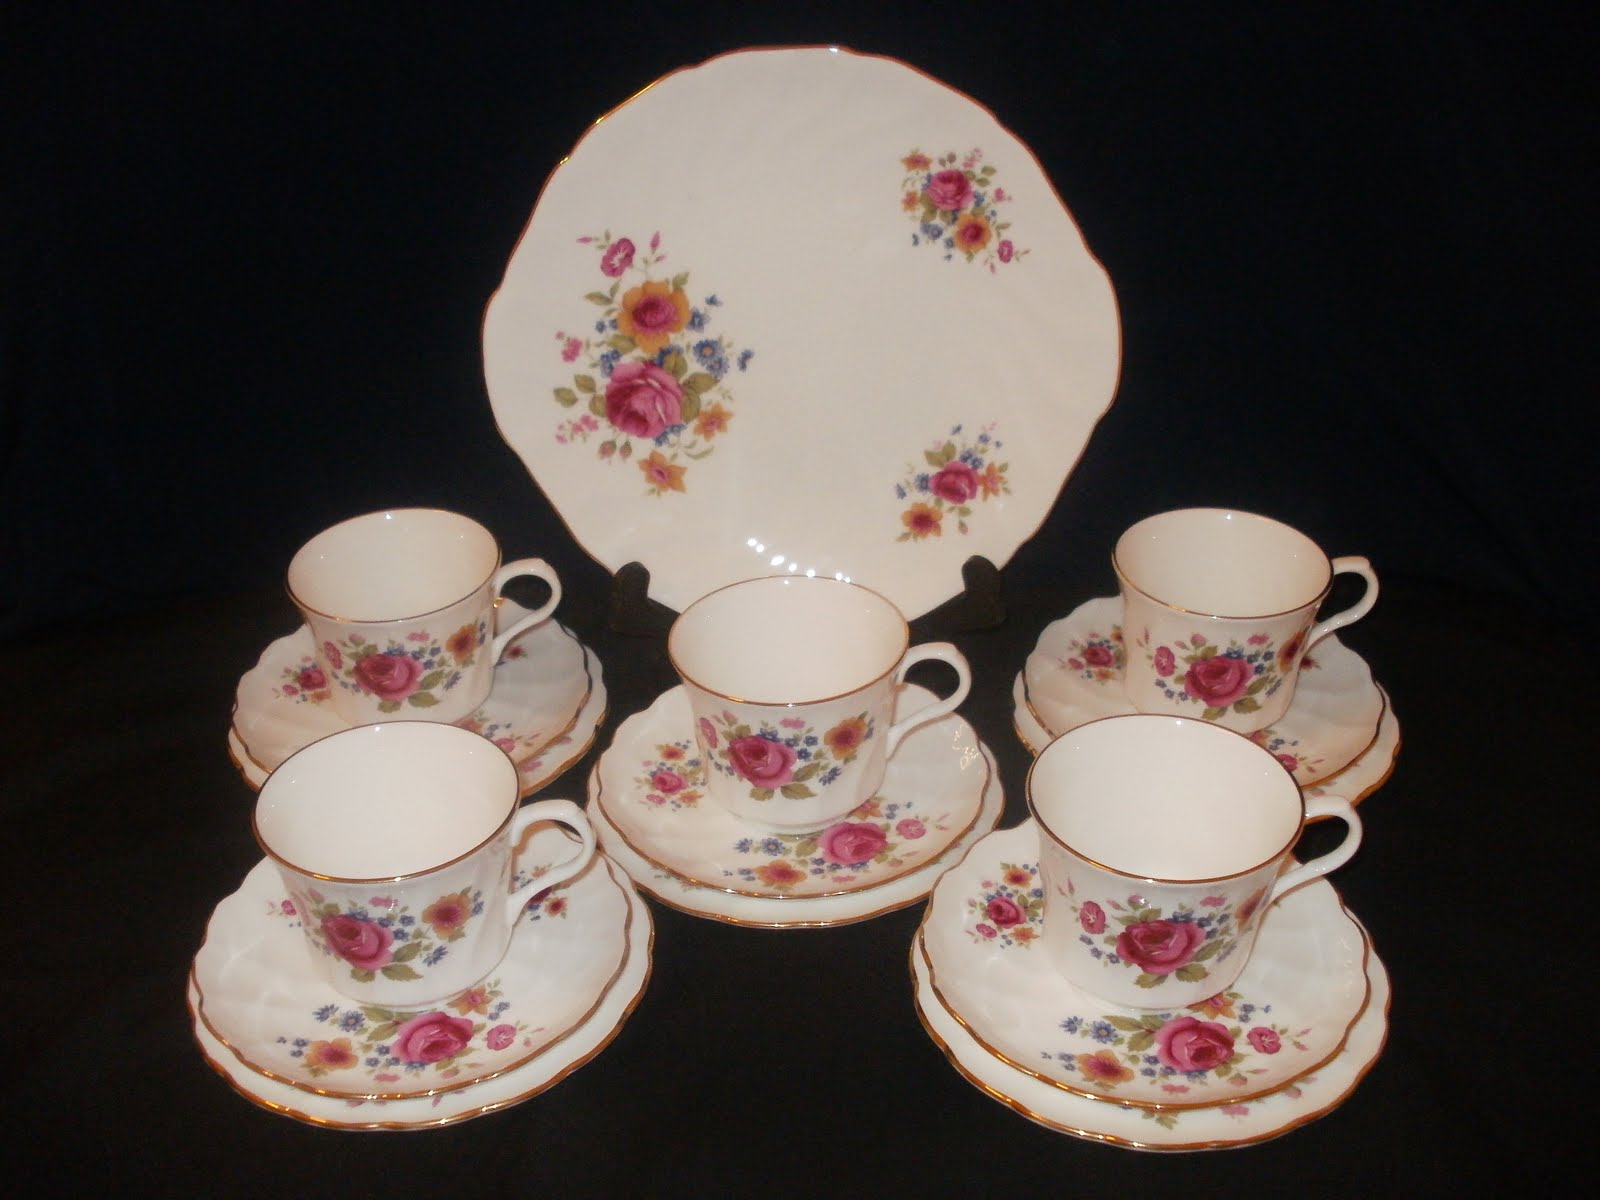 vintage teaware collectibles royal victoria english fine bone china summer rose reserved. Black Bedroom Furniture Sets. Home Design Ideas